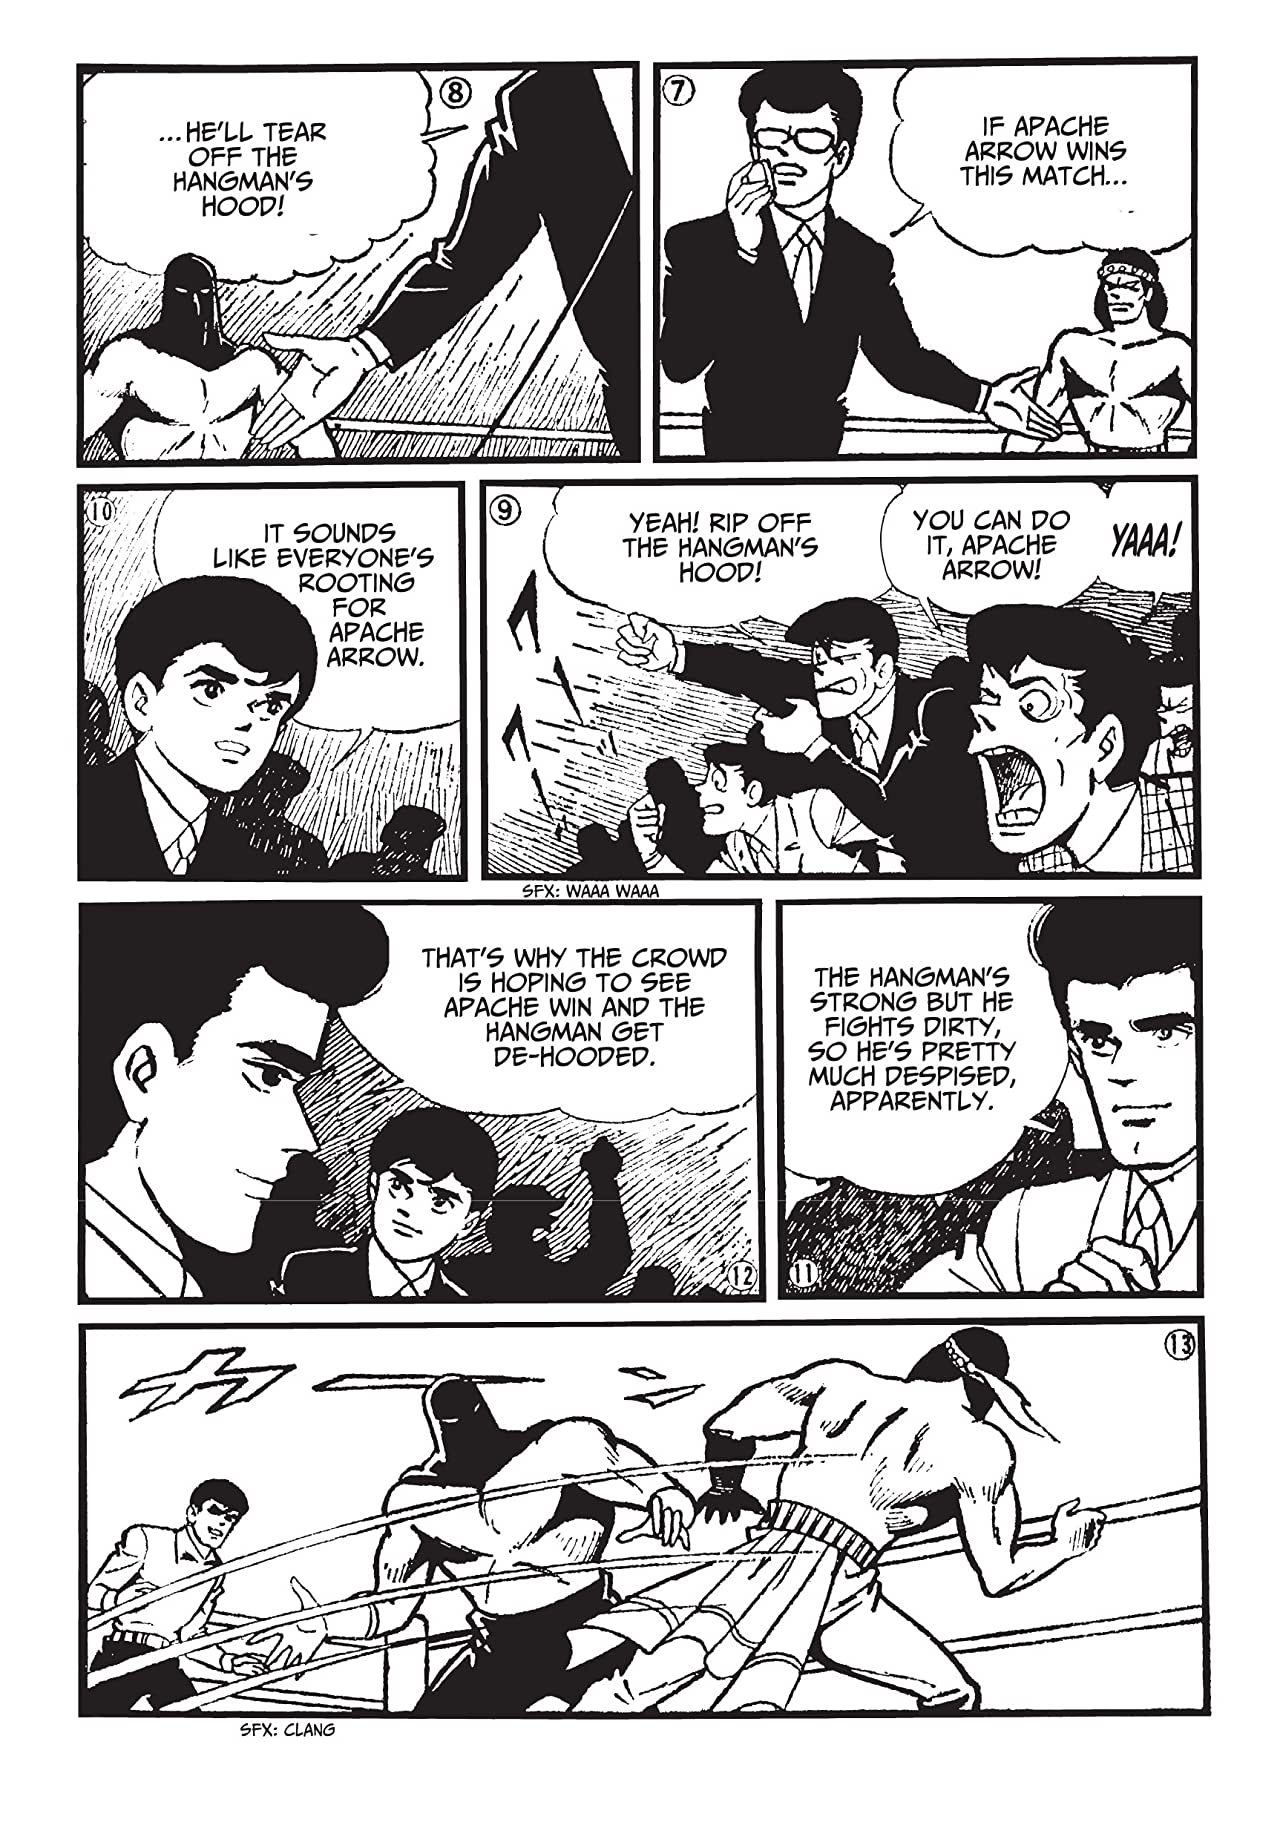 Batman: The Jiro Kuwata Batmanga #24